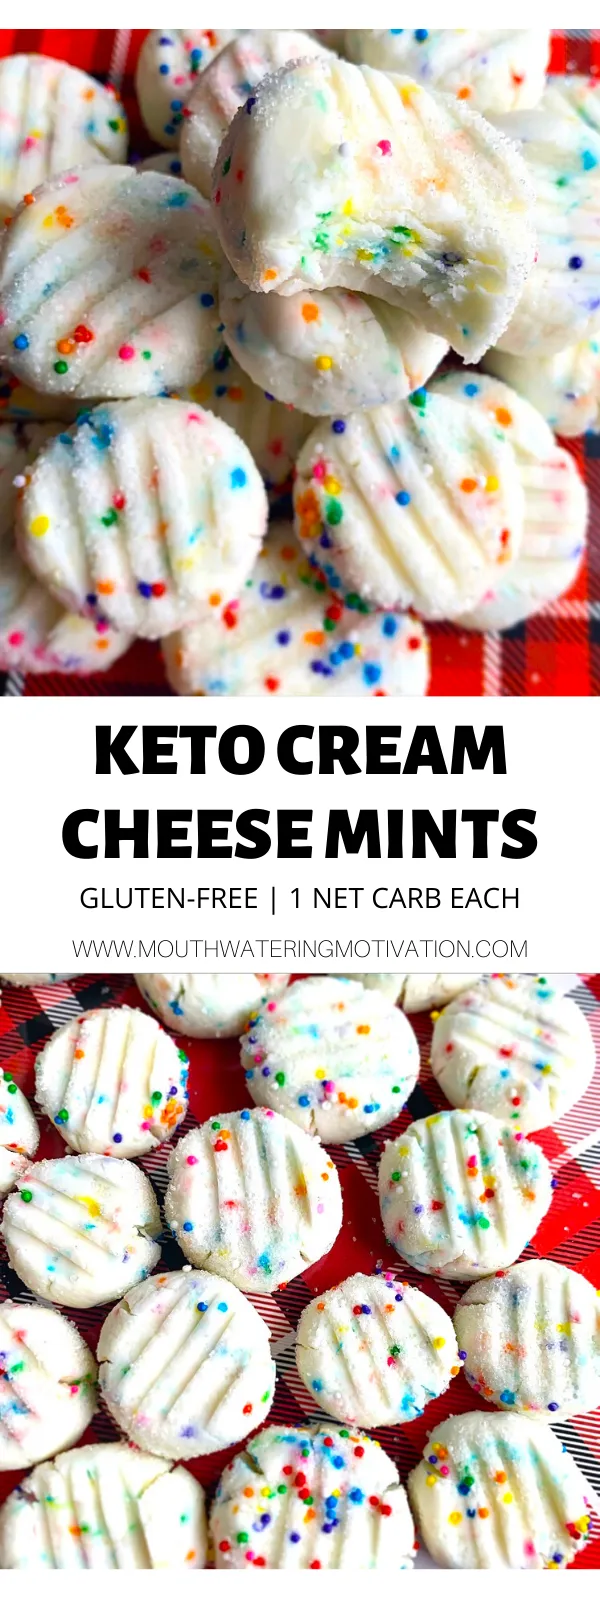 Keto Cream Cheese Mints (No-Bake) | Mouthwatering Motivation #ketorecipes